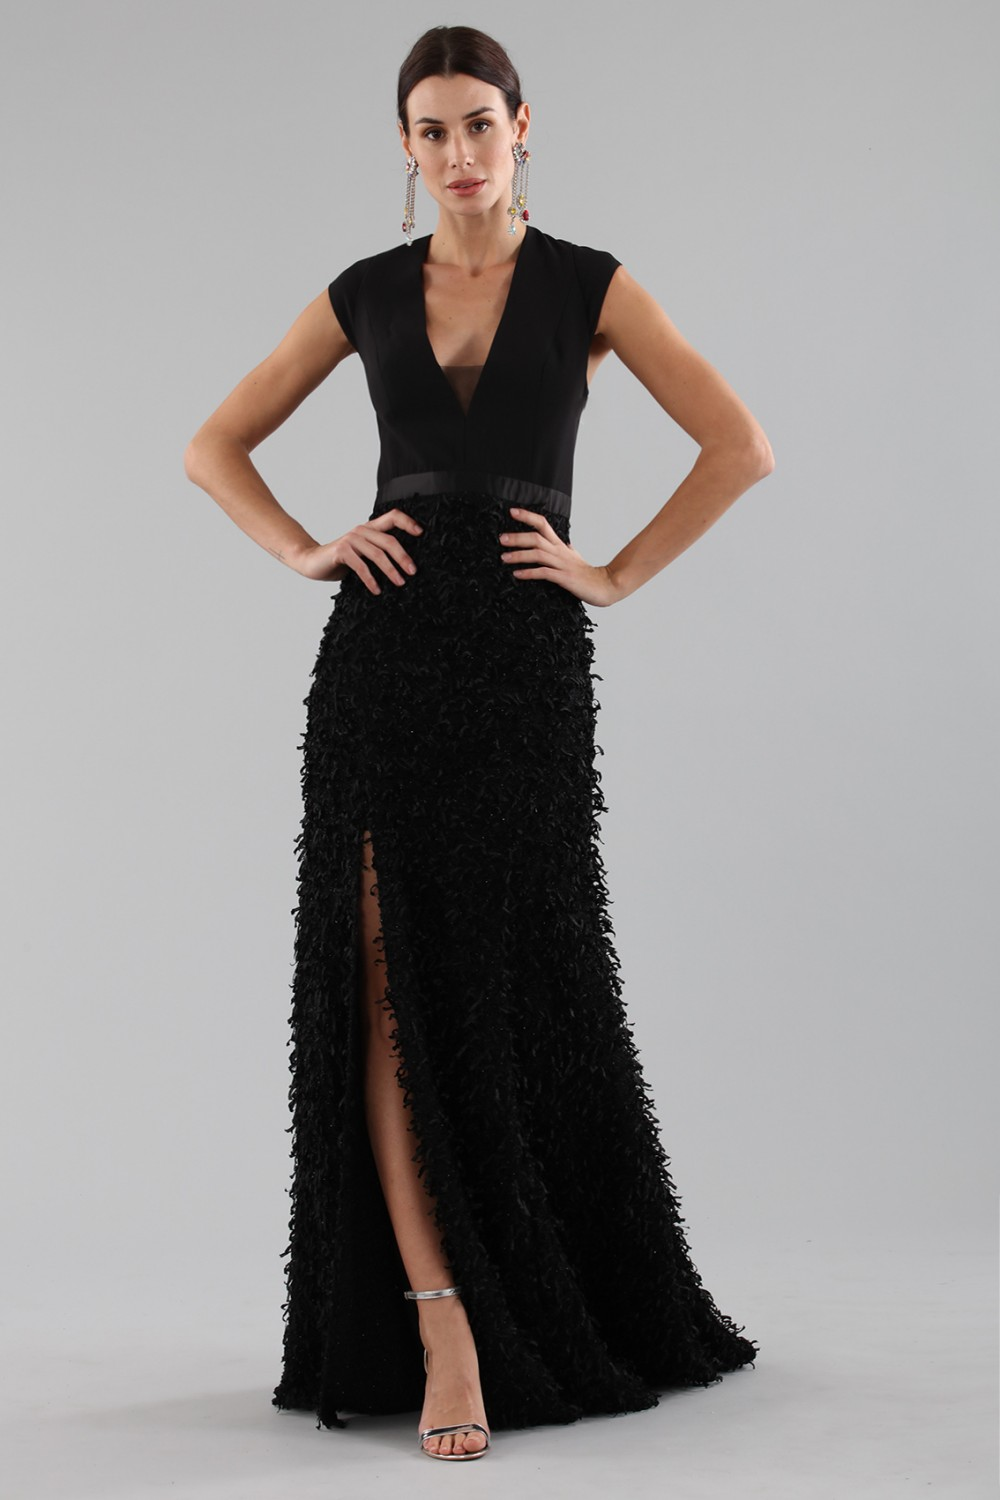 Black dress with finished skirt and V cut to the back